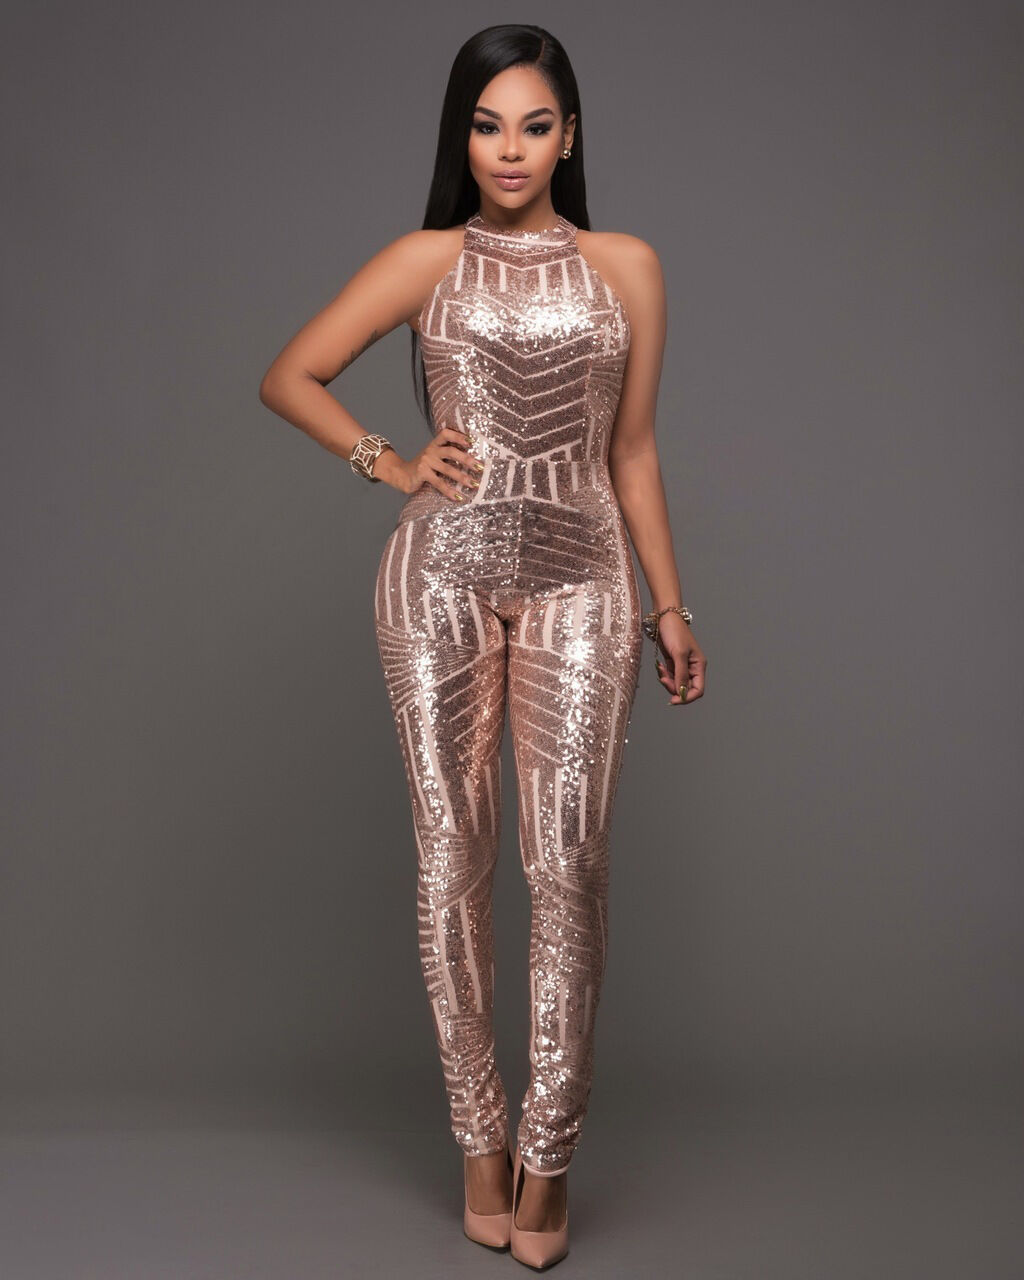 5fcd41548db0 Details about Elegant Women Sequin Clubwear Sleeveless Bodycon Romper  Jumpsuit Party Overalls